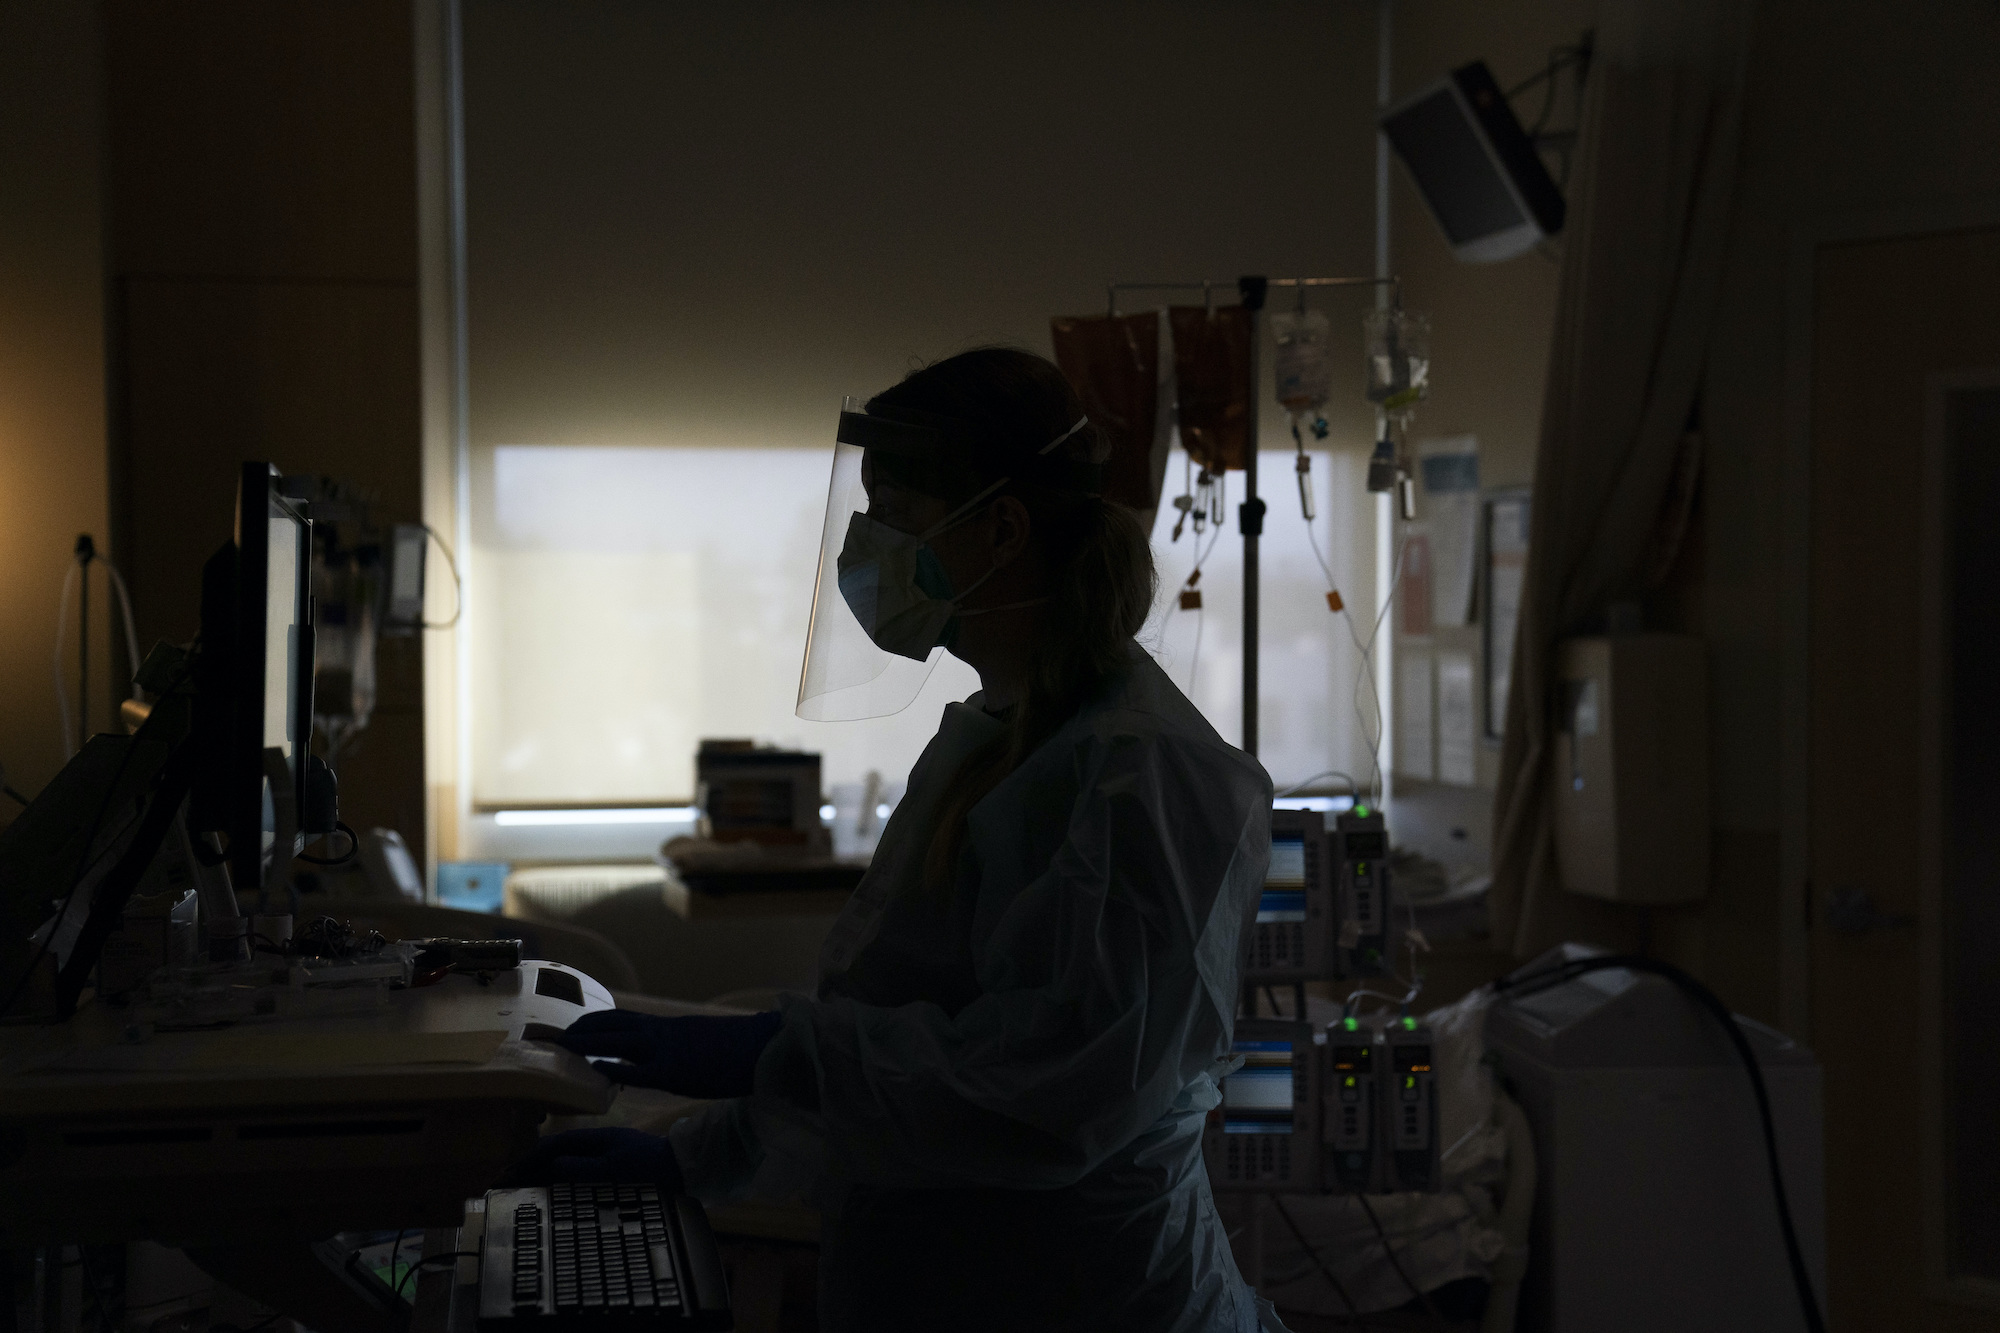 Registered nurse Virginia Petersen works on a computer while assisting a COVID-19 patient